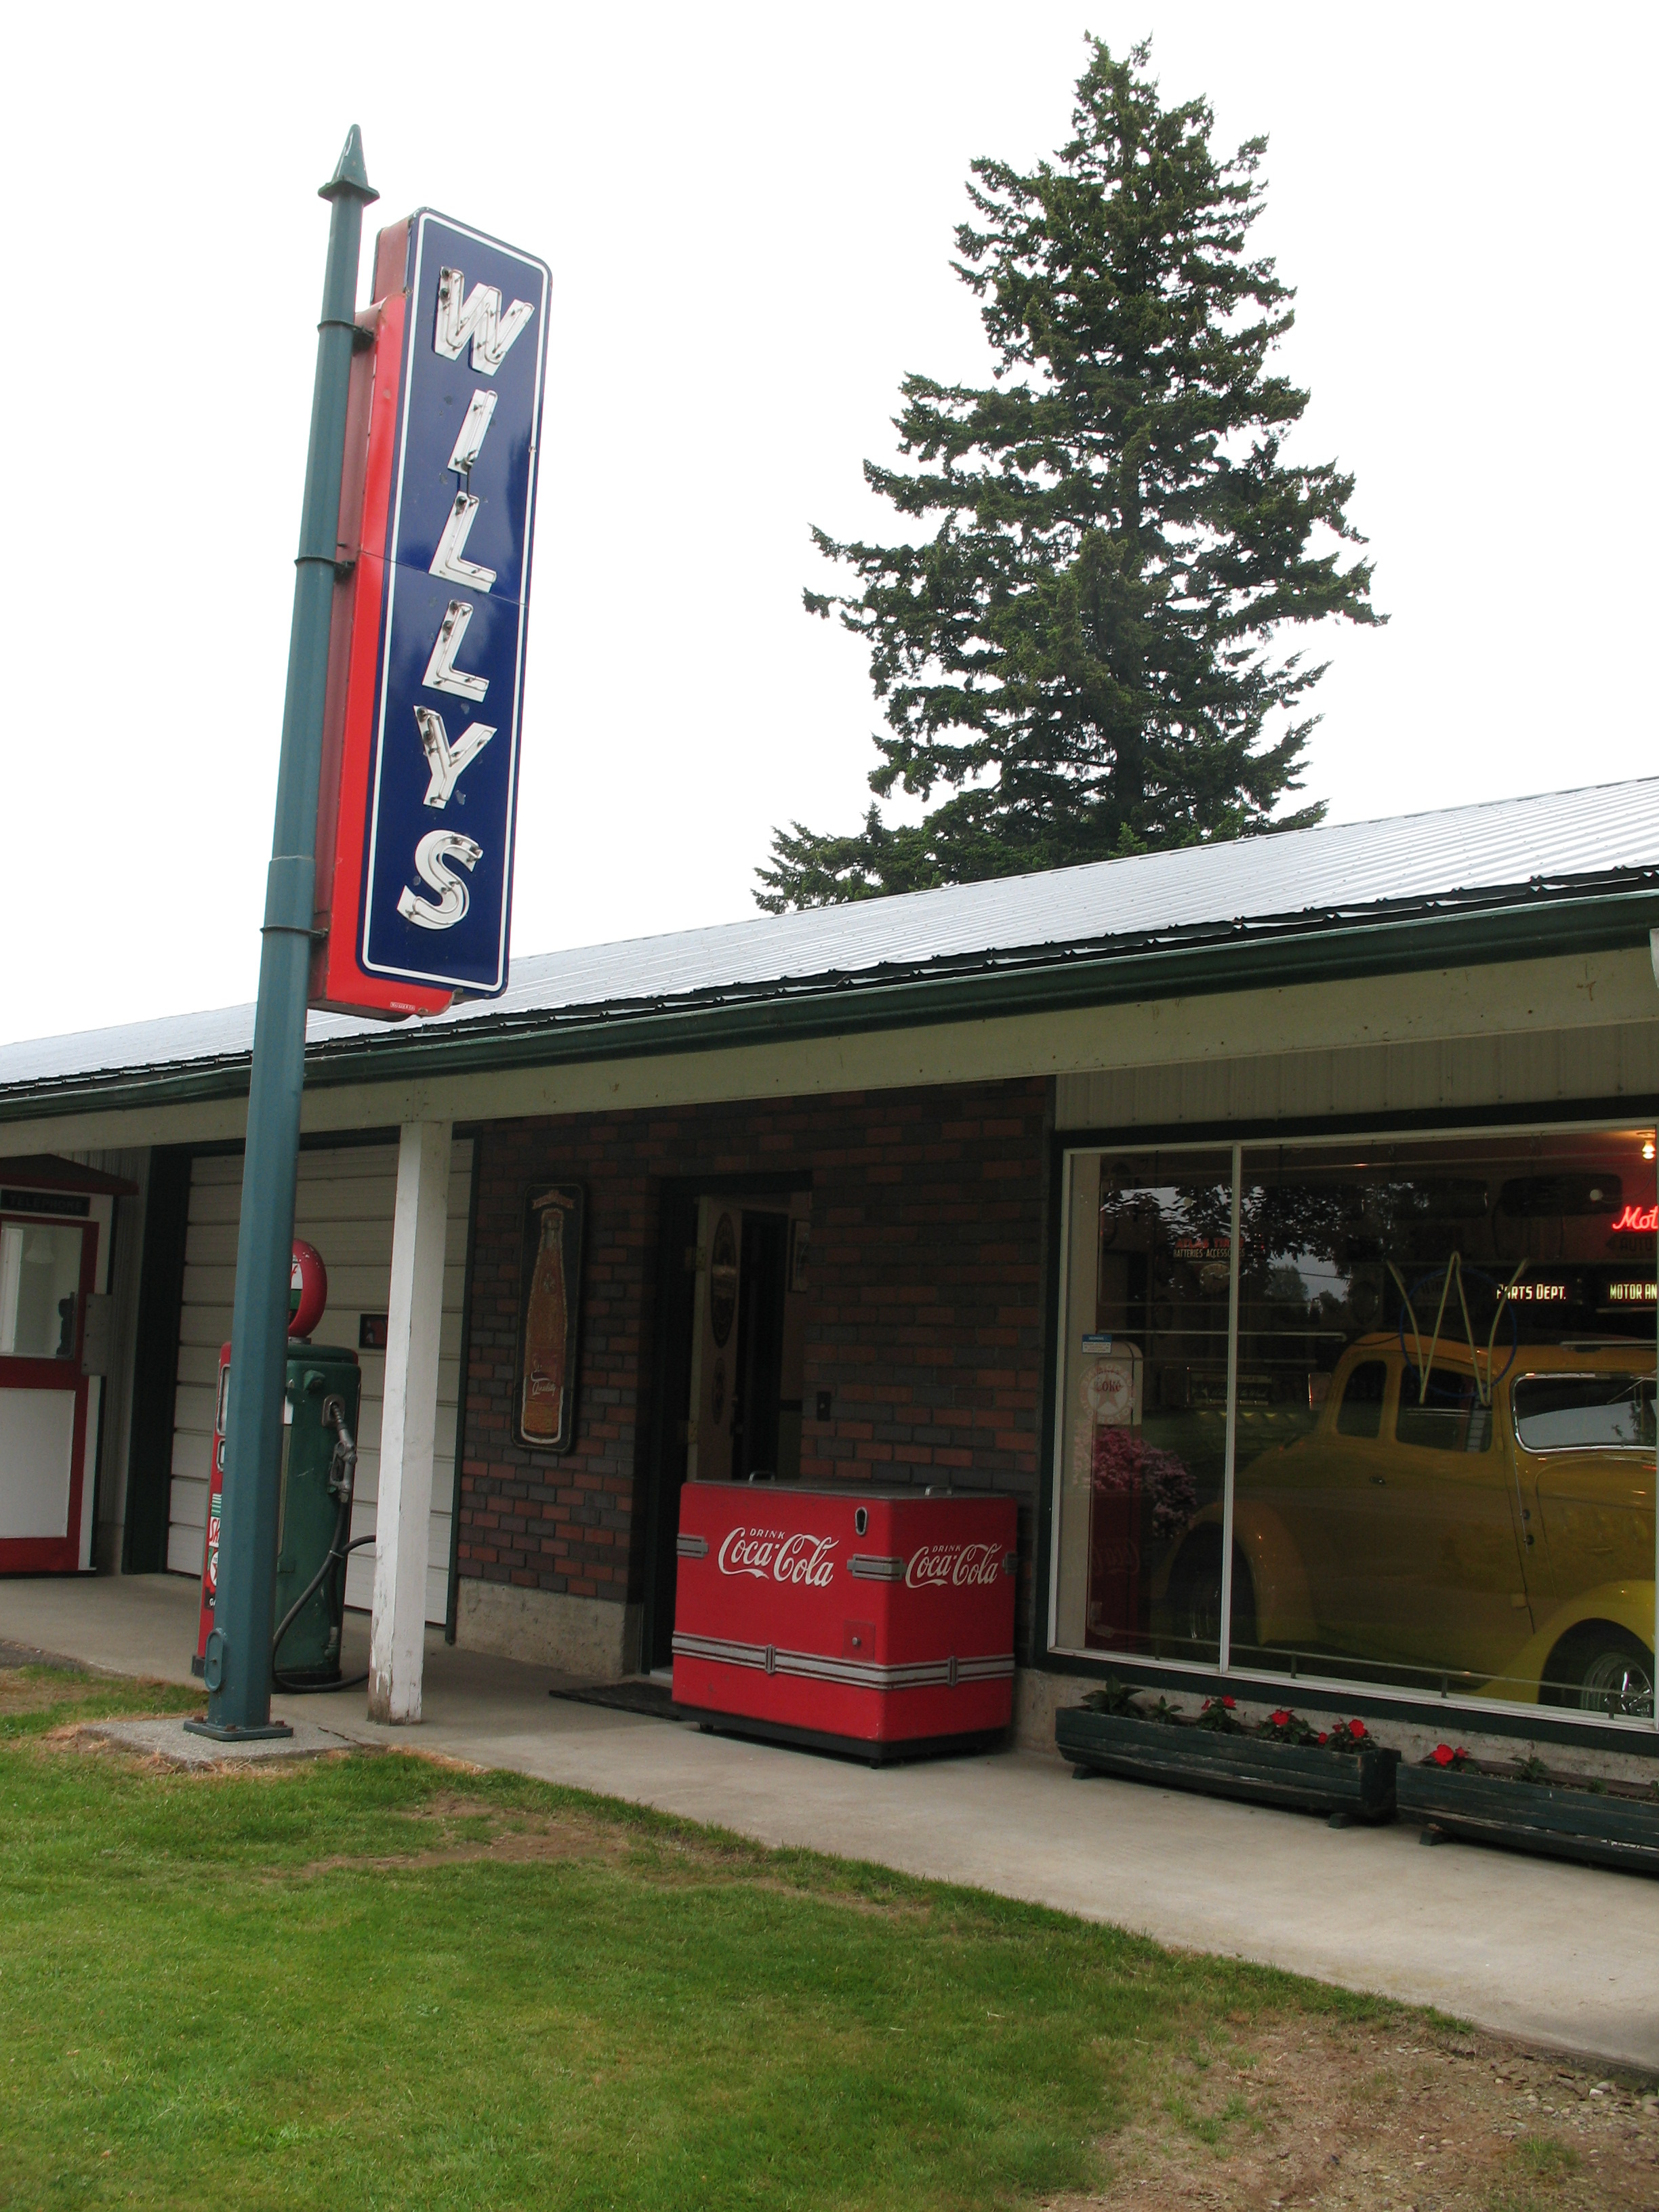 Willys Garage & Showroom